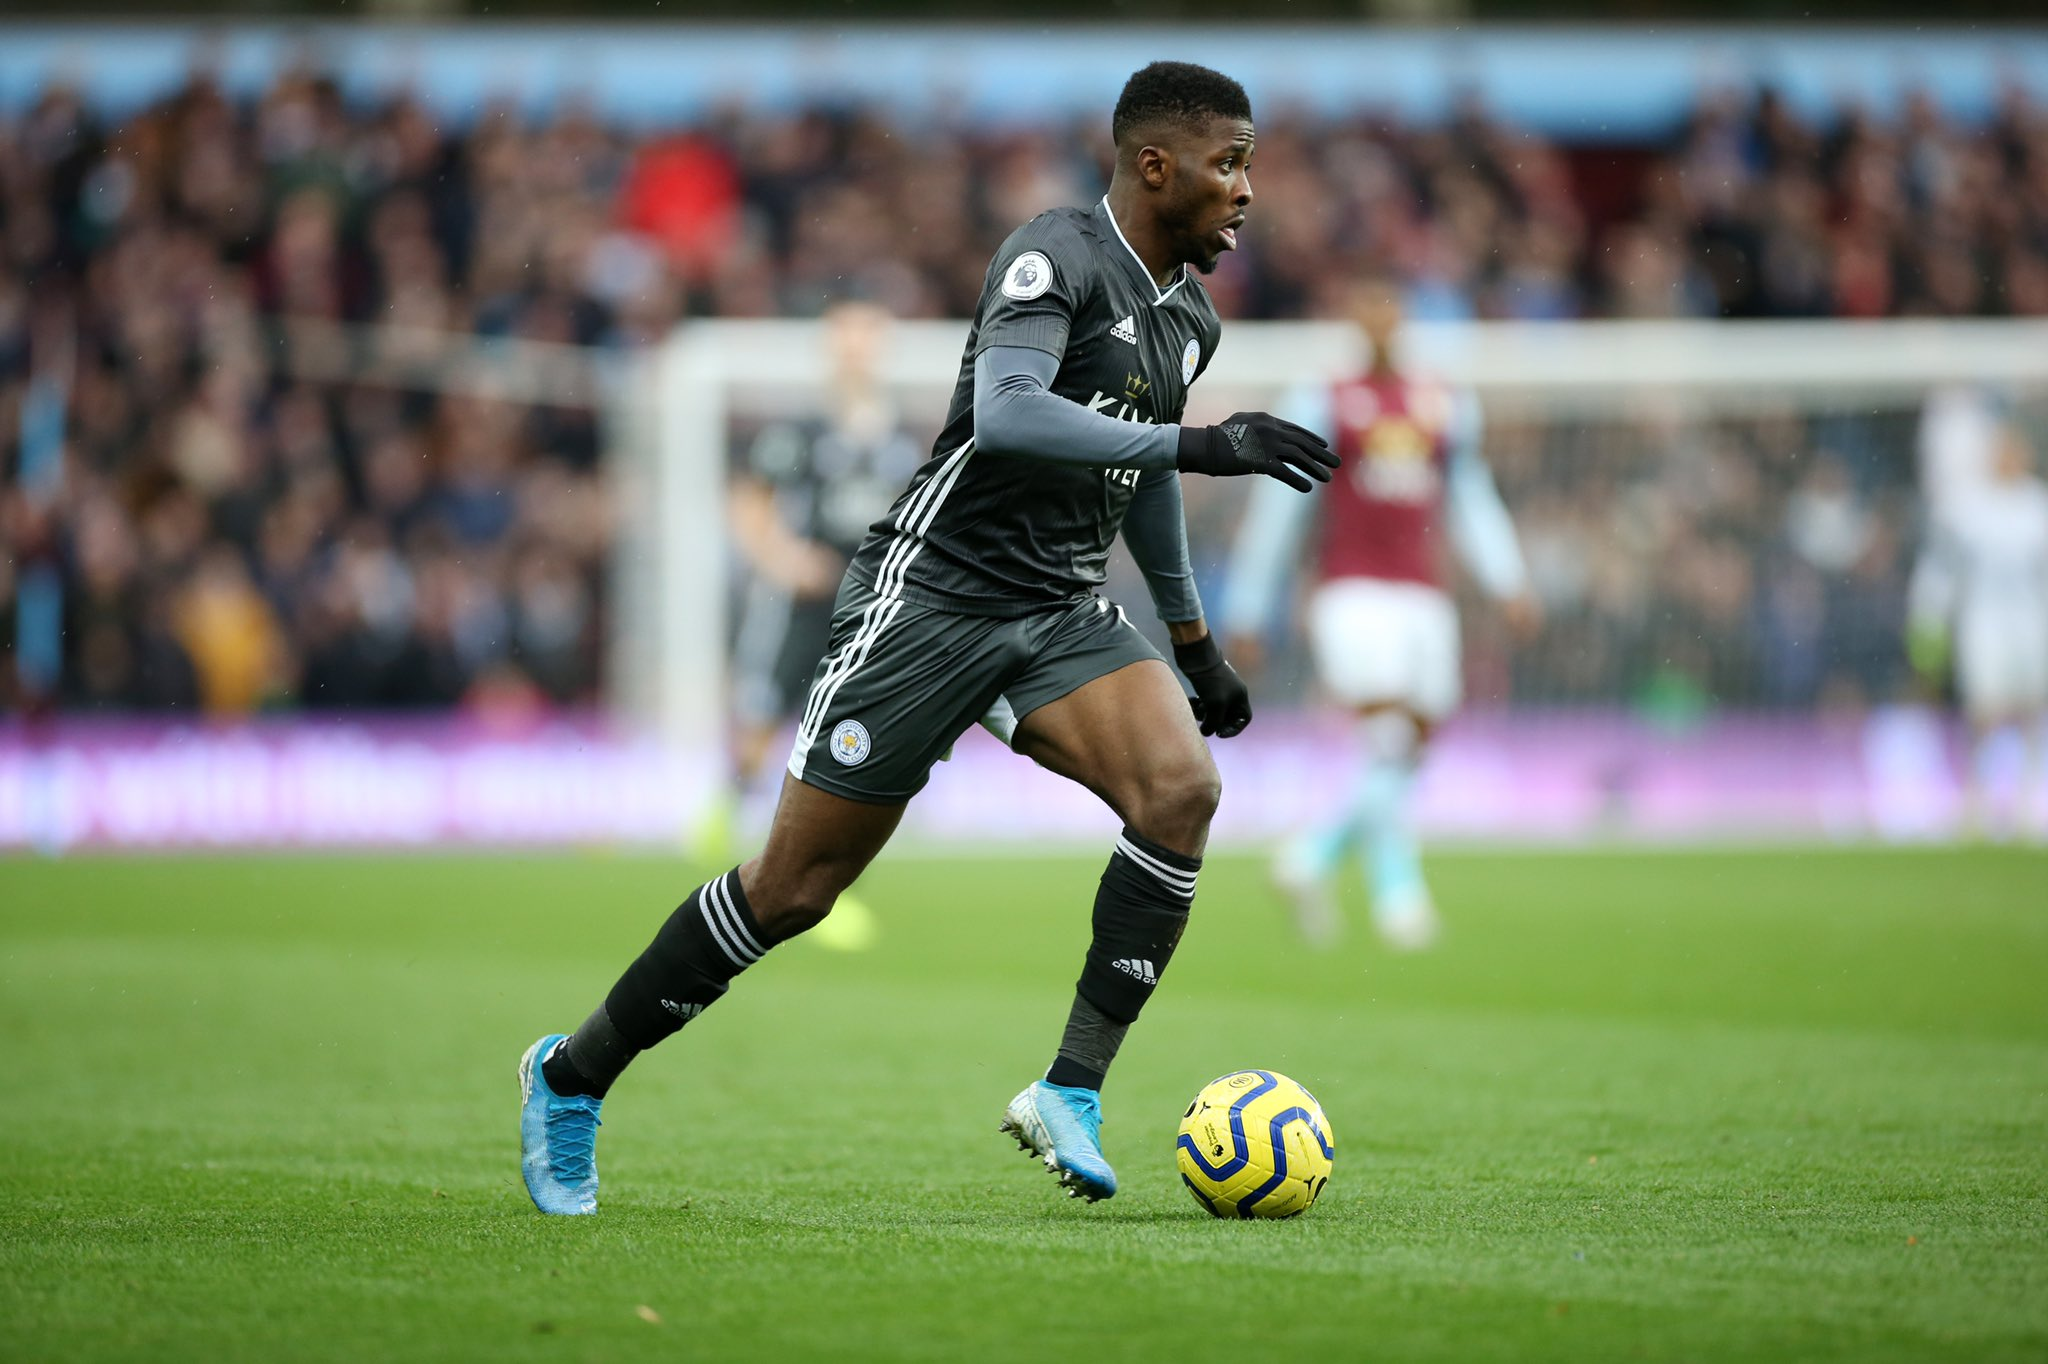 Norwich Boss Farke Blasts Iheanacho For Poor Sportsmanship